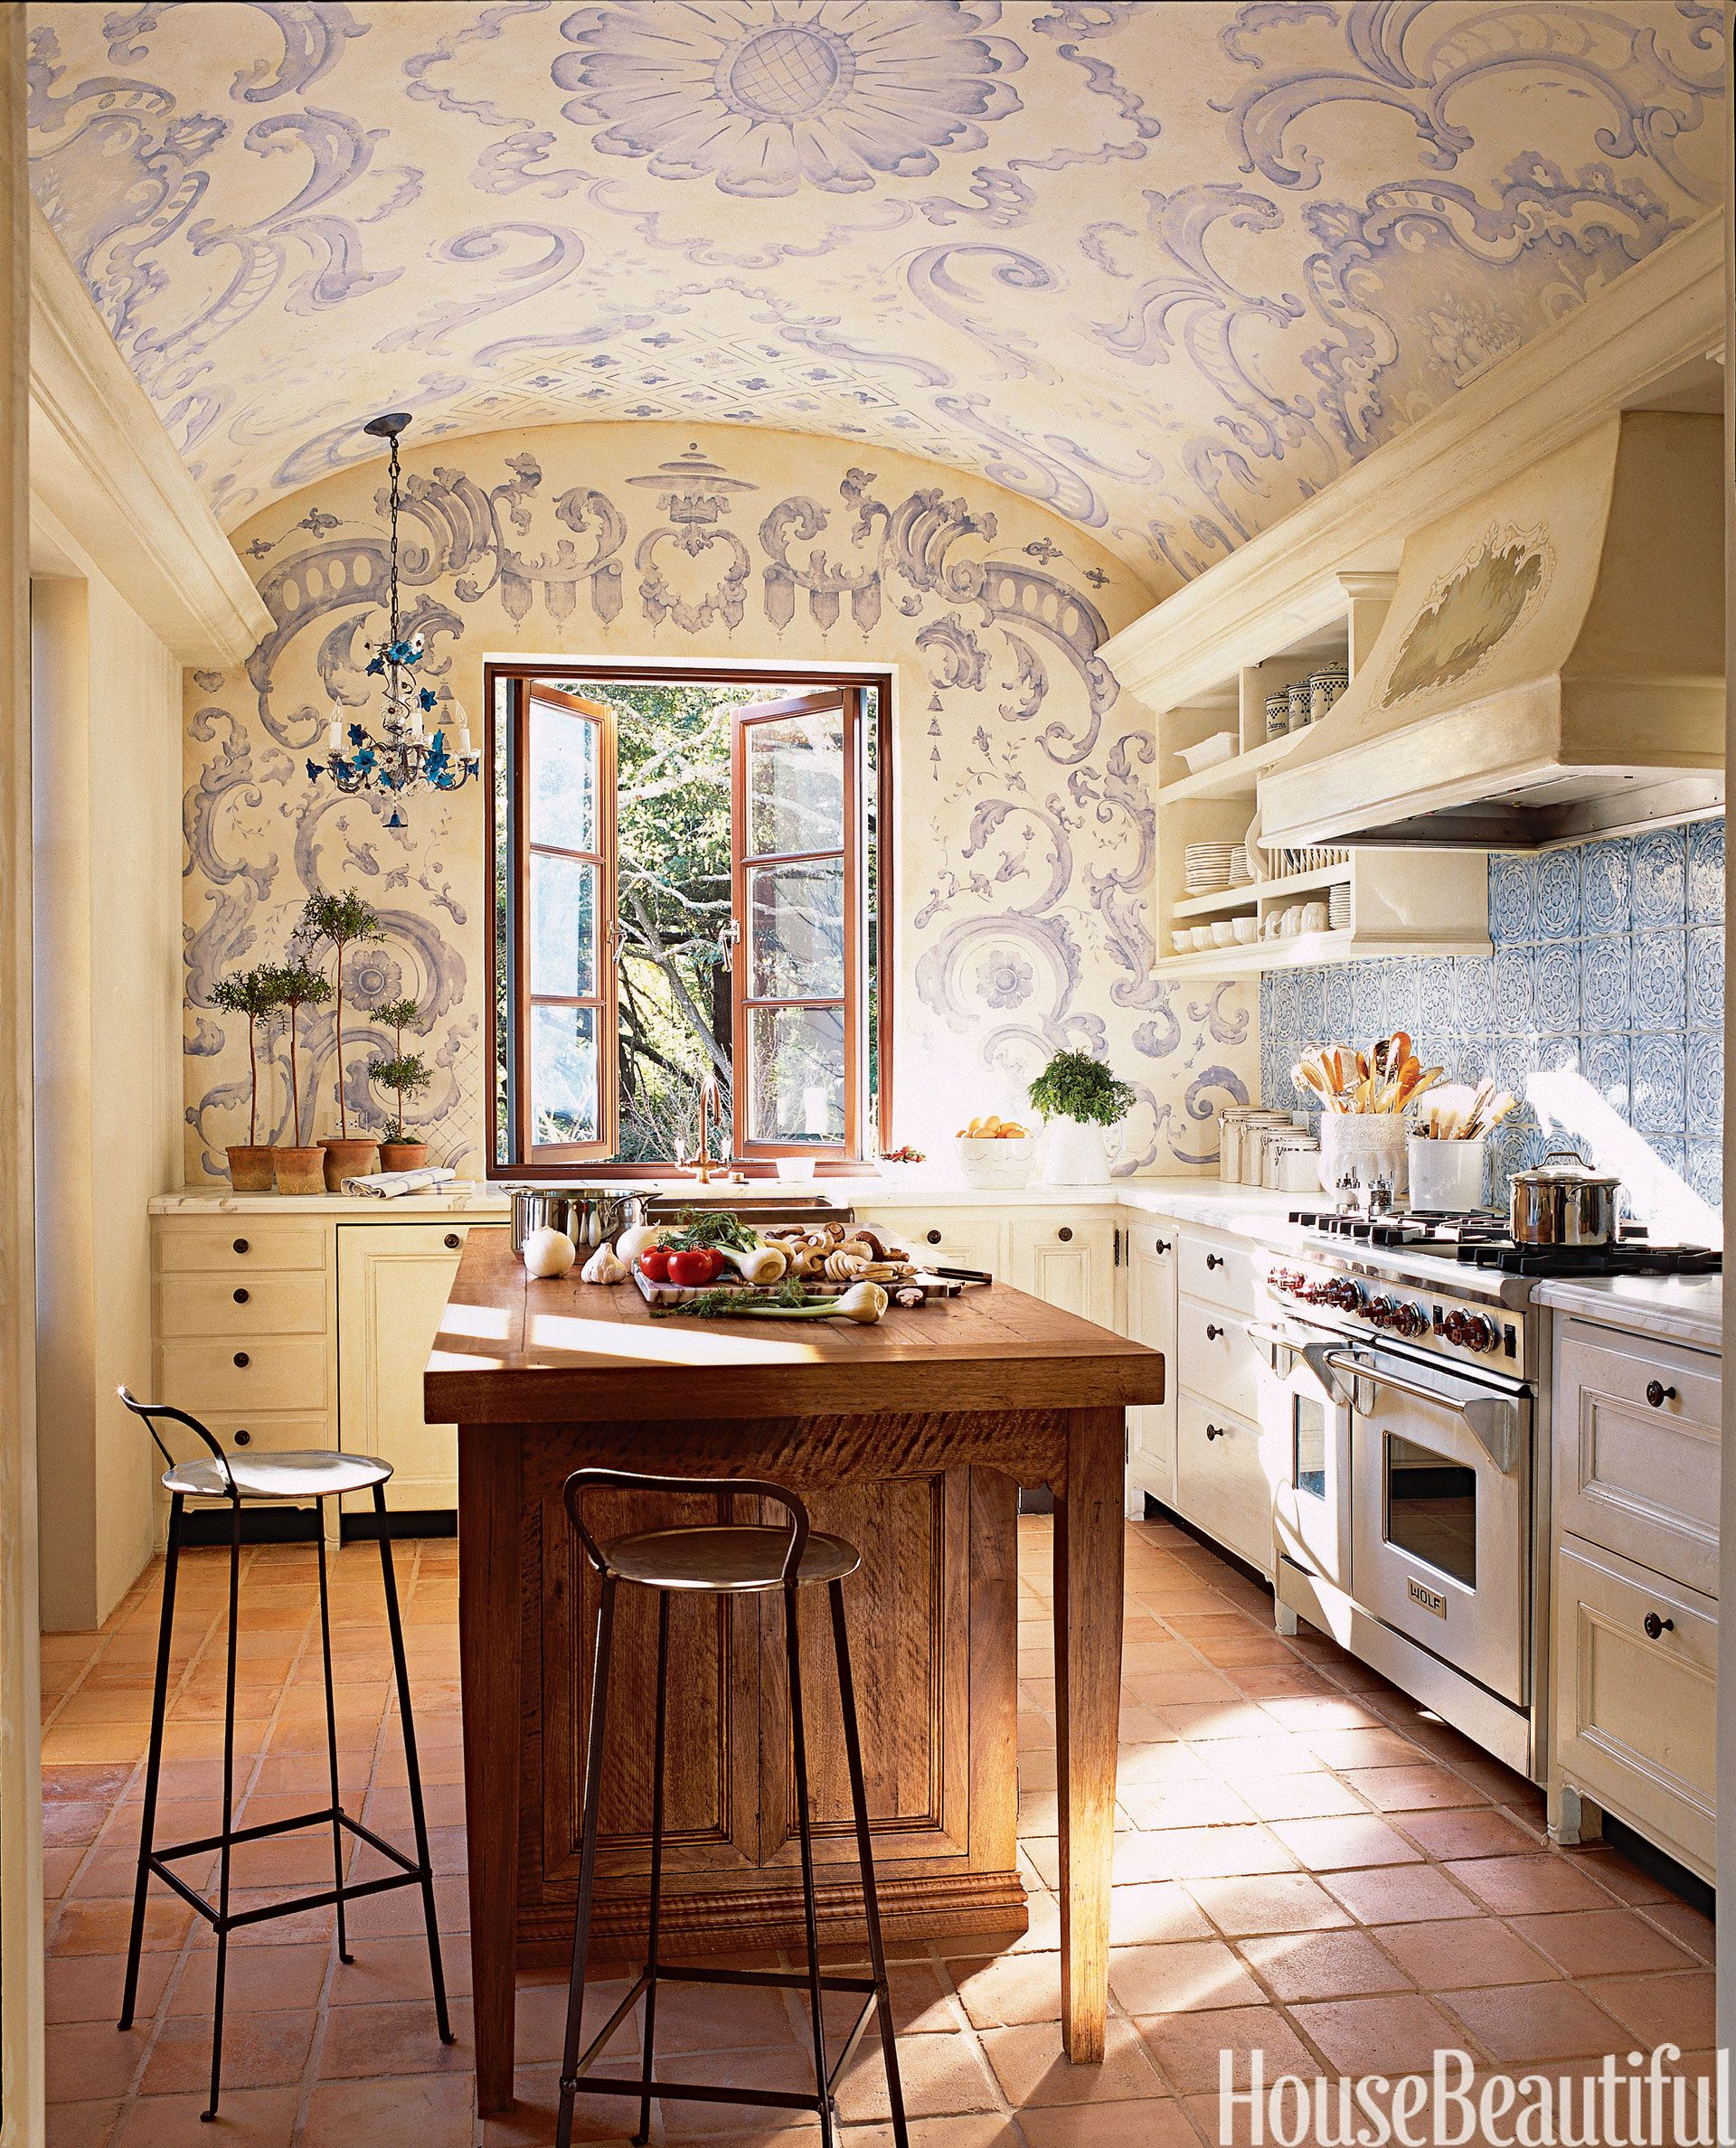 85 Kitchen Design & Remodeling Ideas - Pictures of Beautiful ...